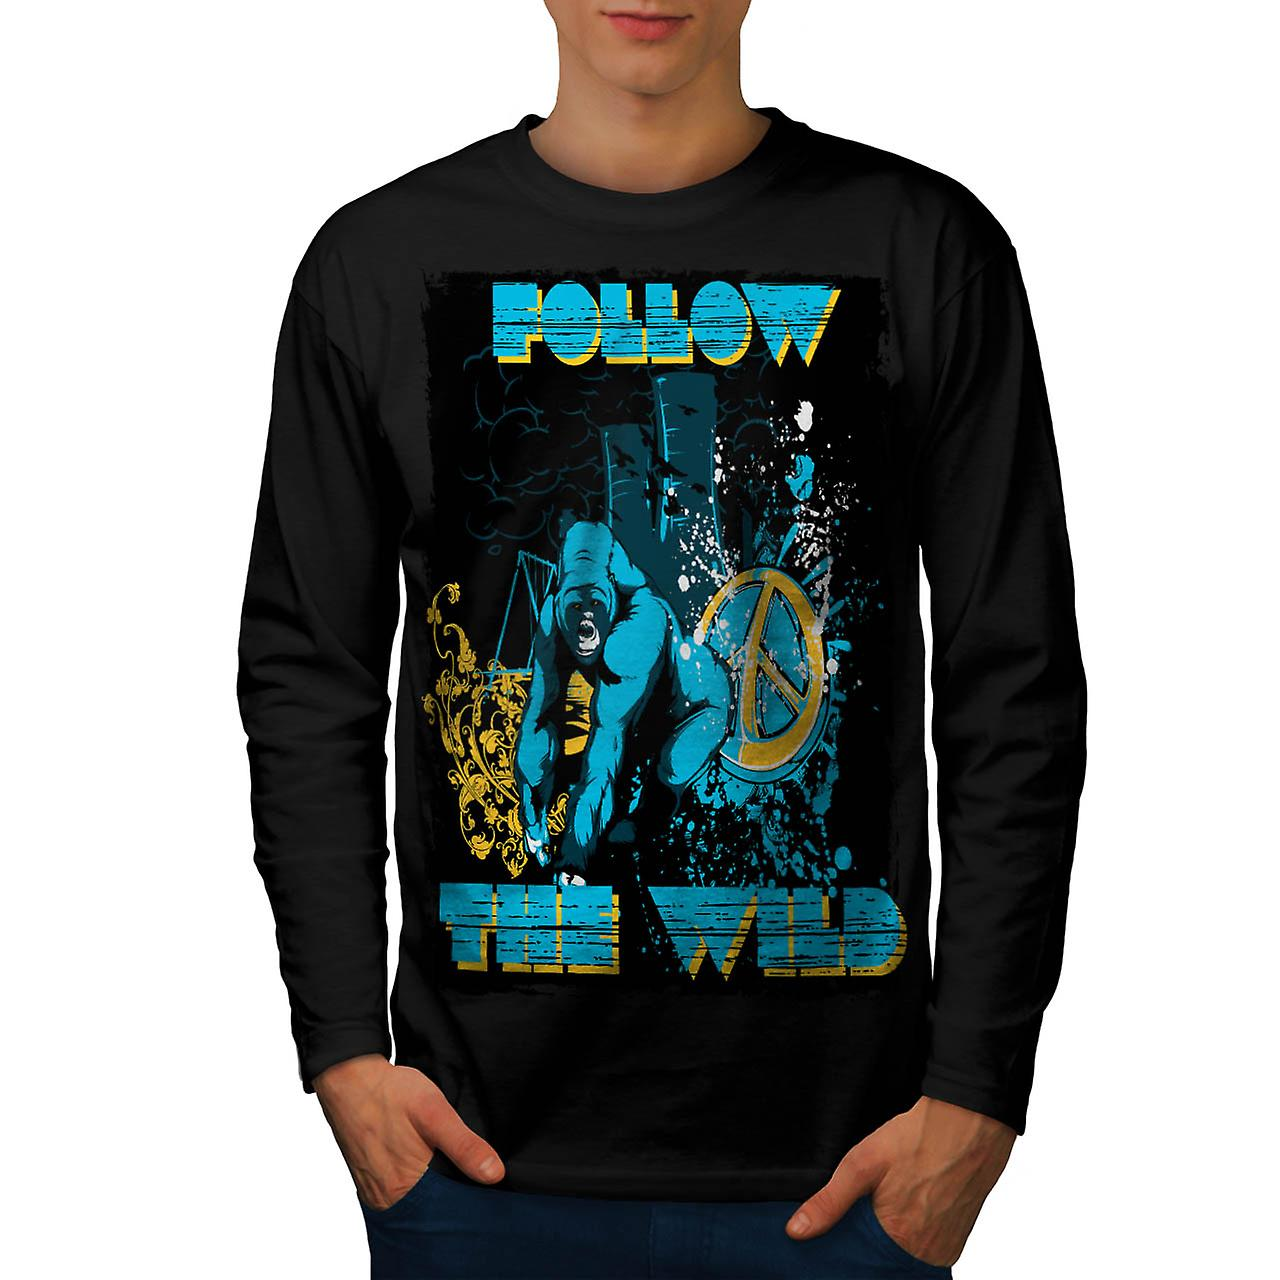 Follow the Wild Chimp Wilderness Men Black Long Sleeve T-shirt | Wellcoda